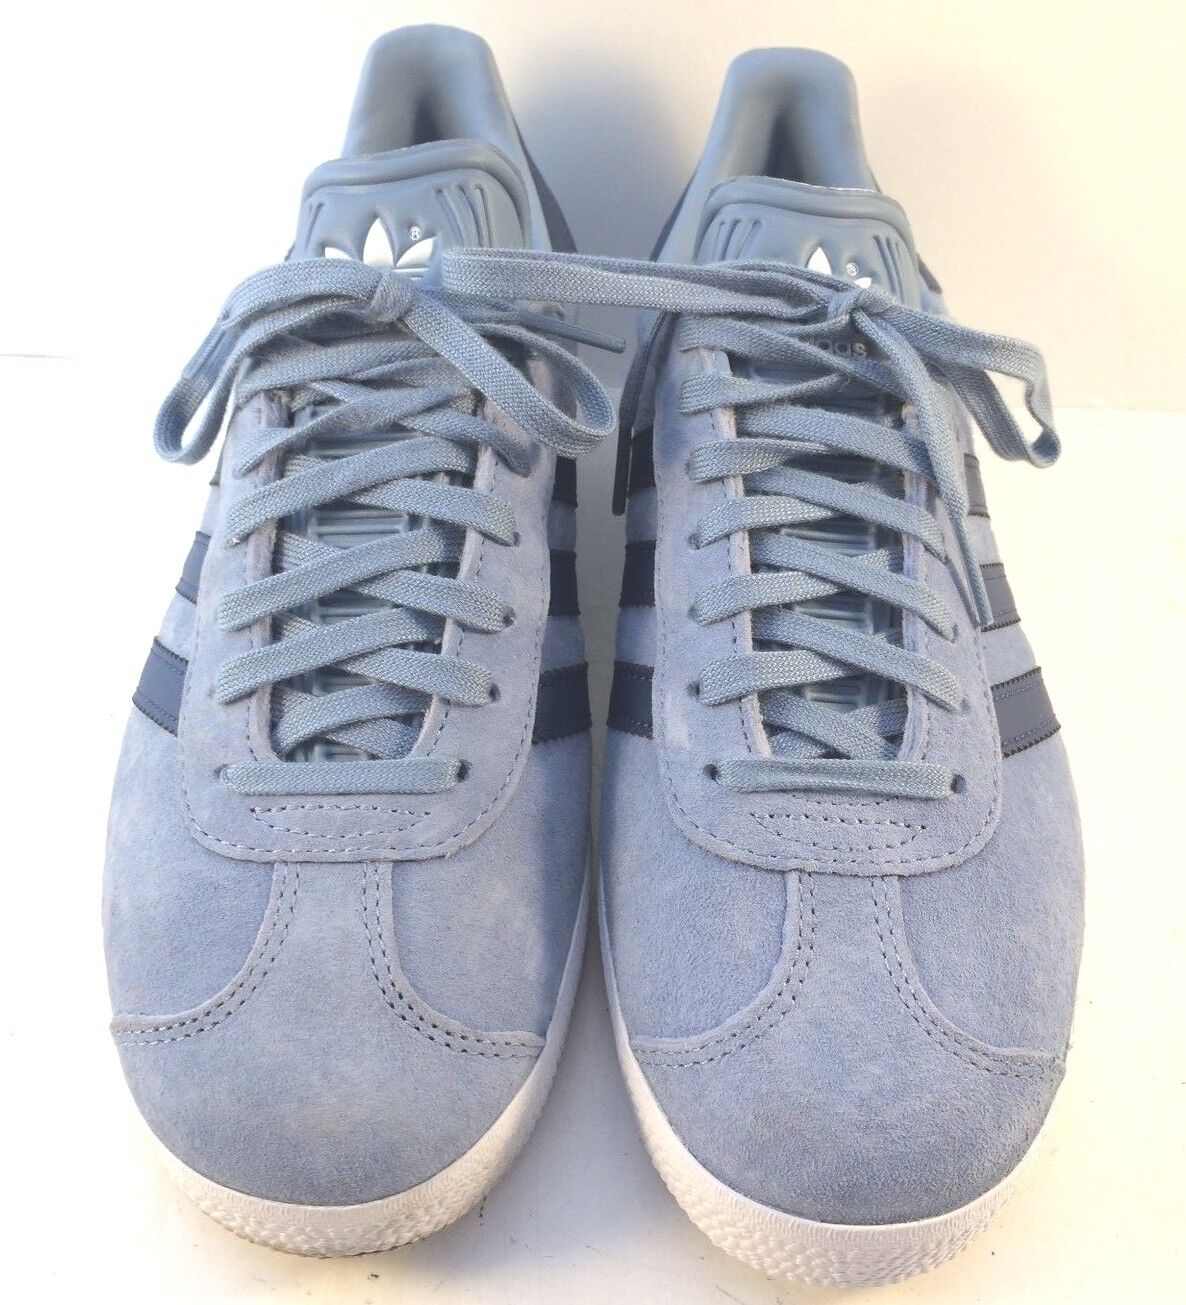 Adidas bluee Suede Gazelle Originals Casual shoes Trainers Womens Size US 5M